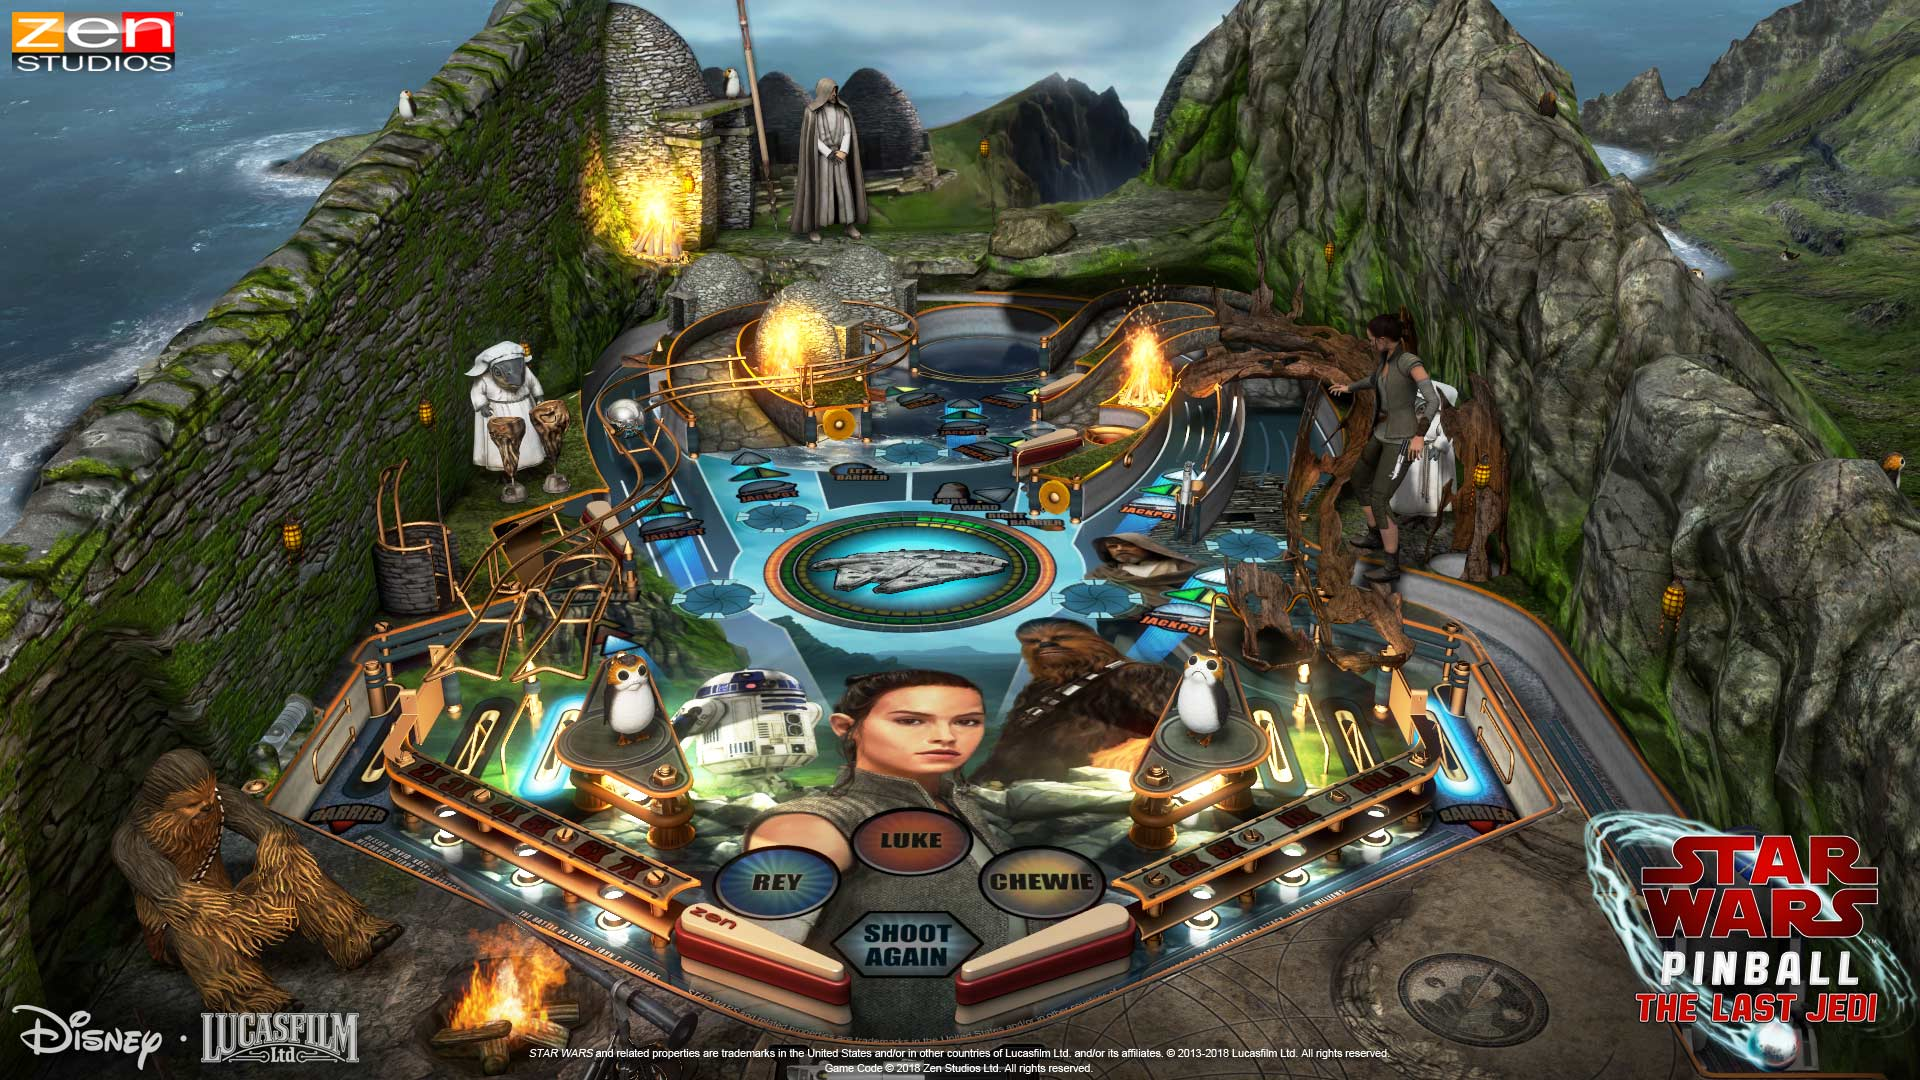 Pinball FX3 Star Wars Ahch-To Island Table